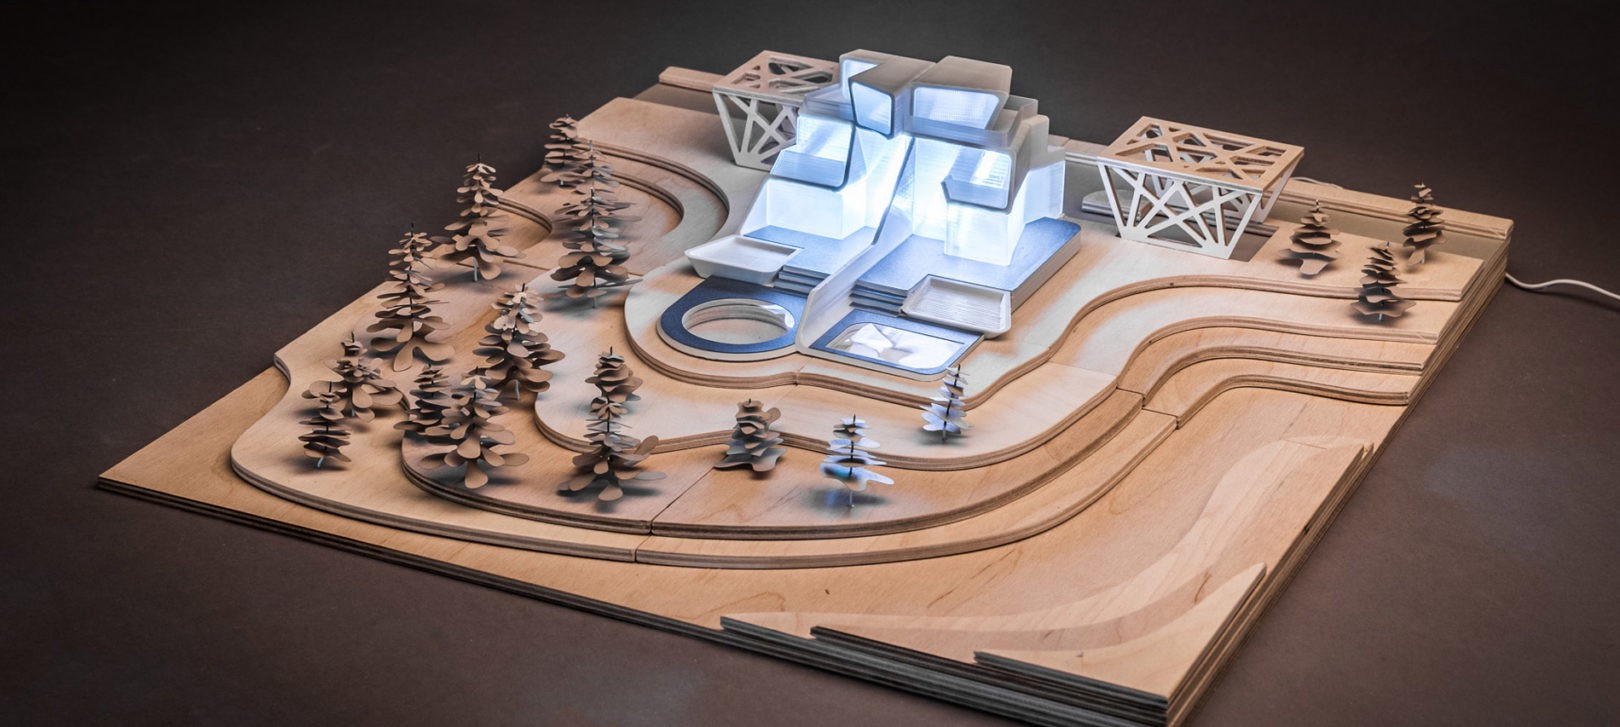 MultiMaterial Architectural Model Made with Multitool 3D Printer